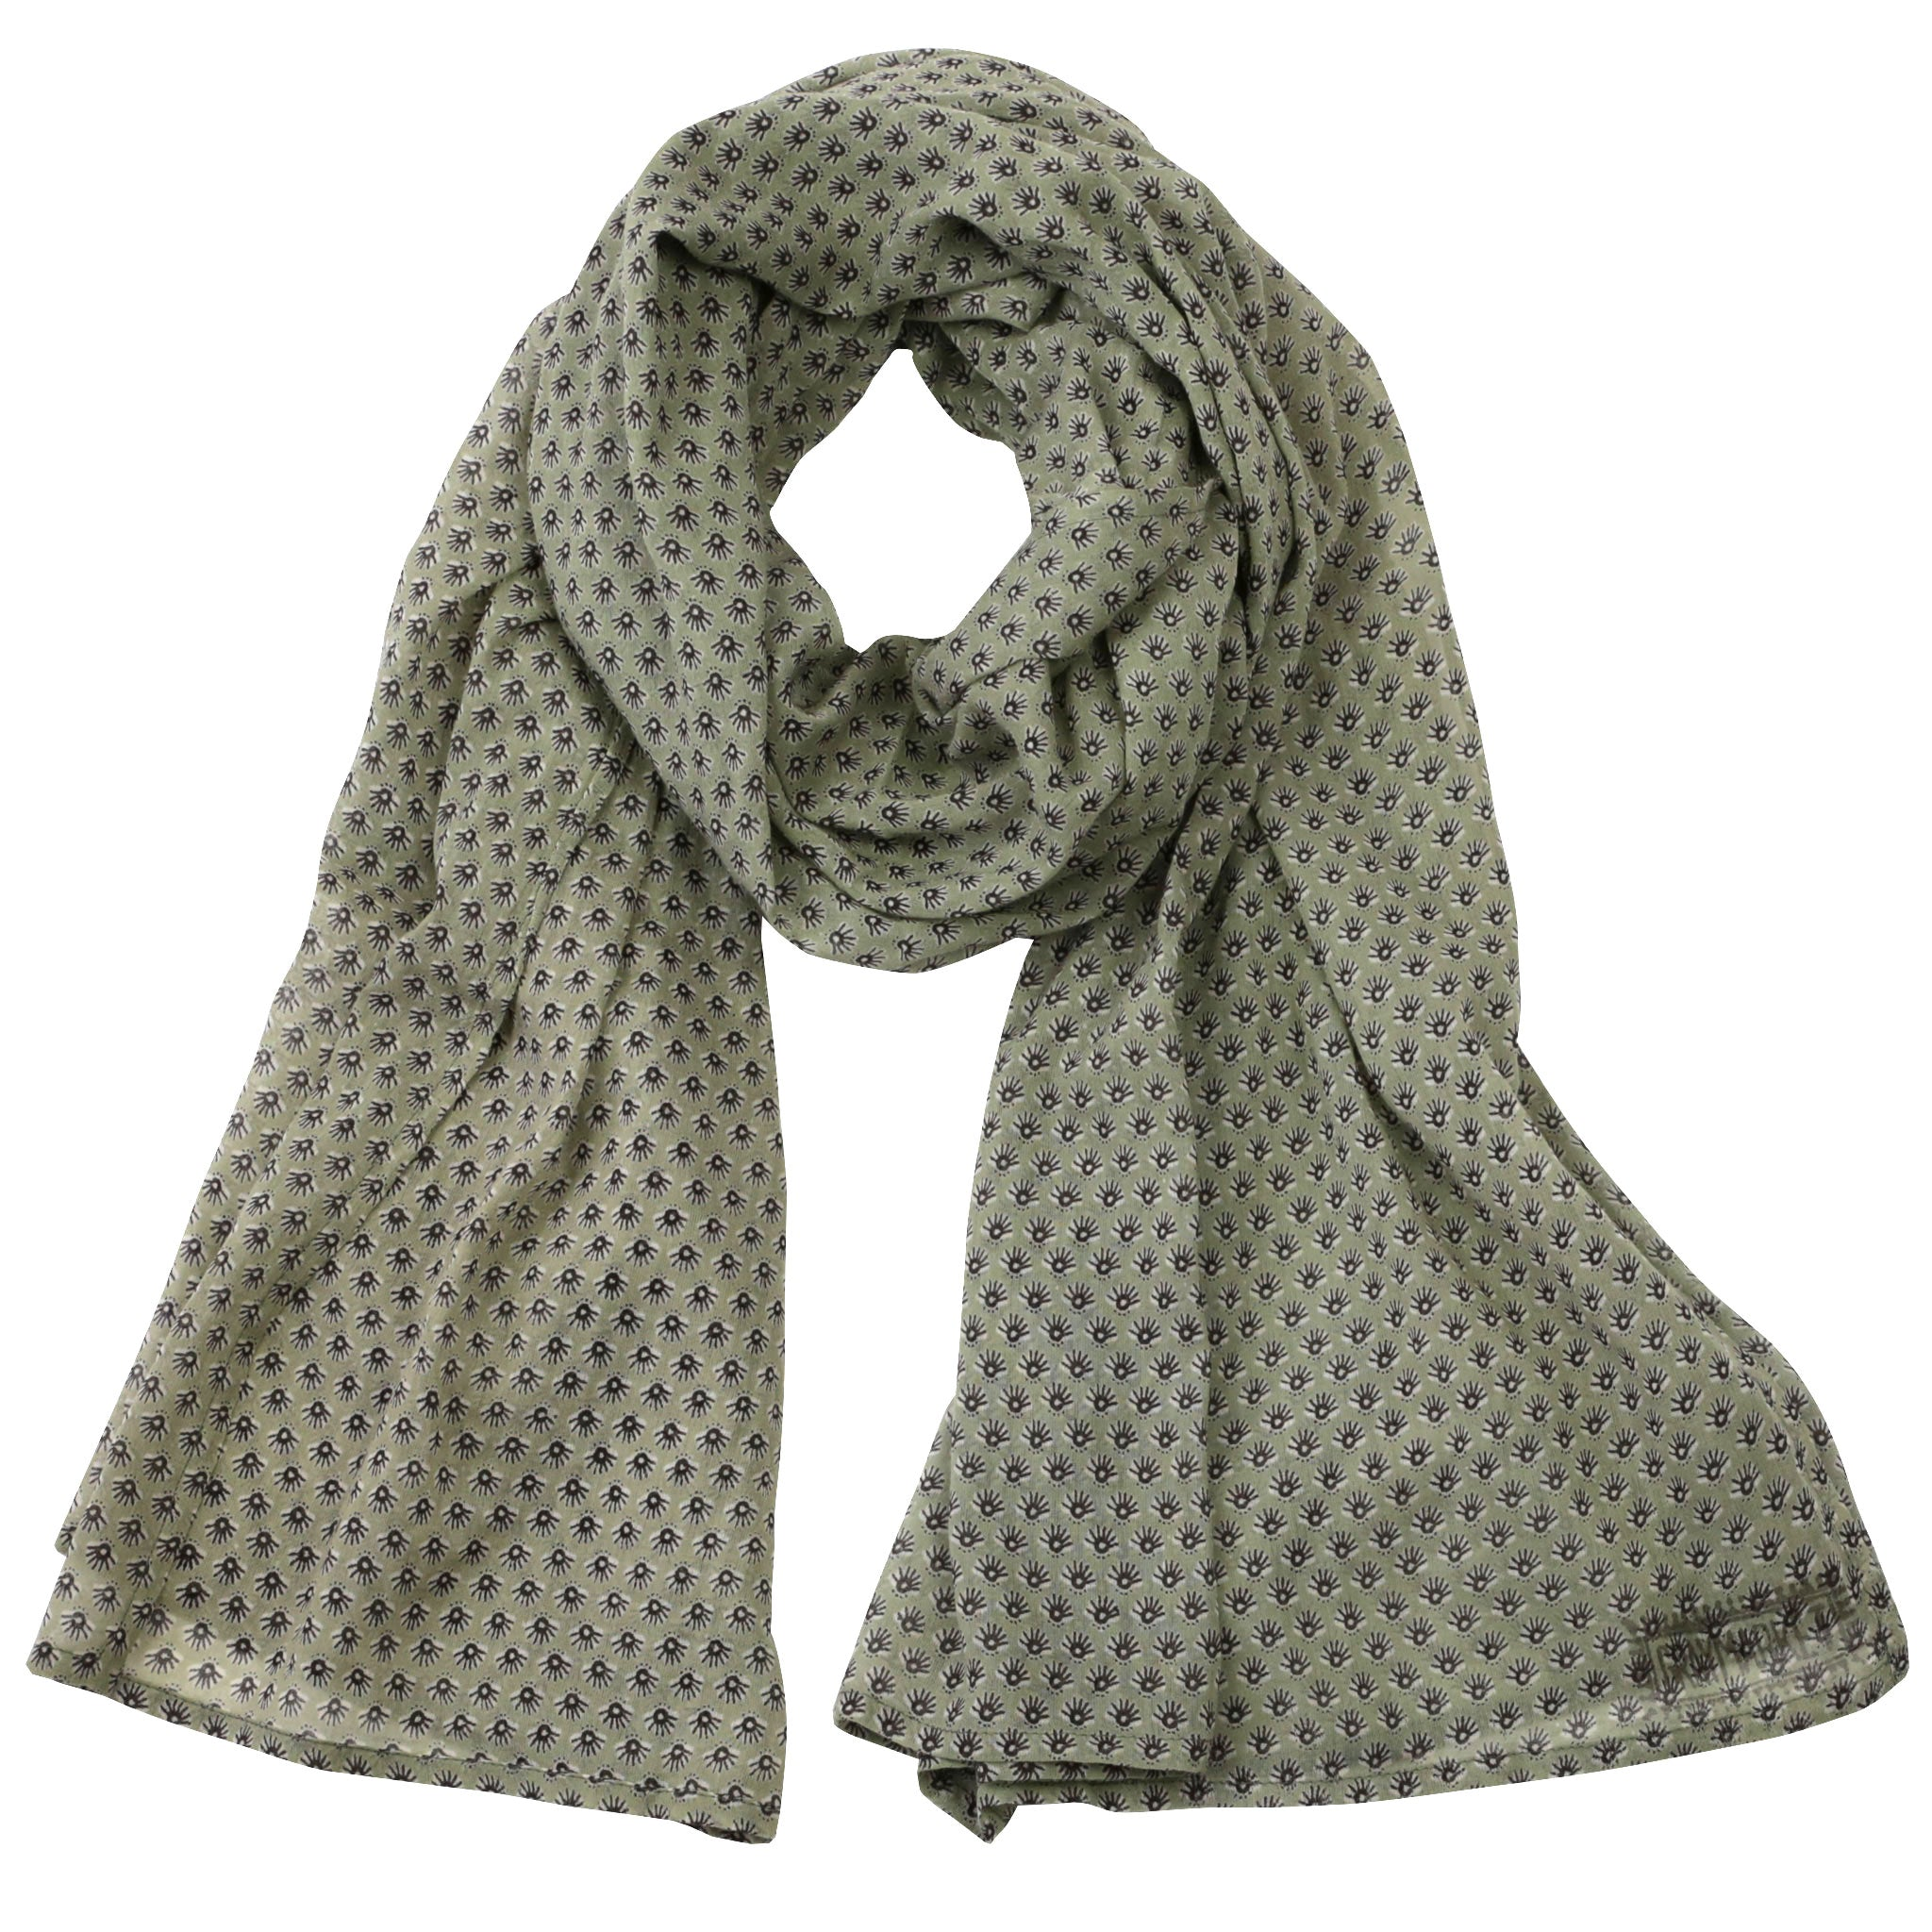 Celeste Natural Block Printed Scarf